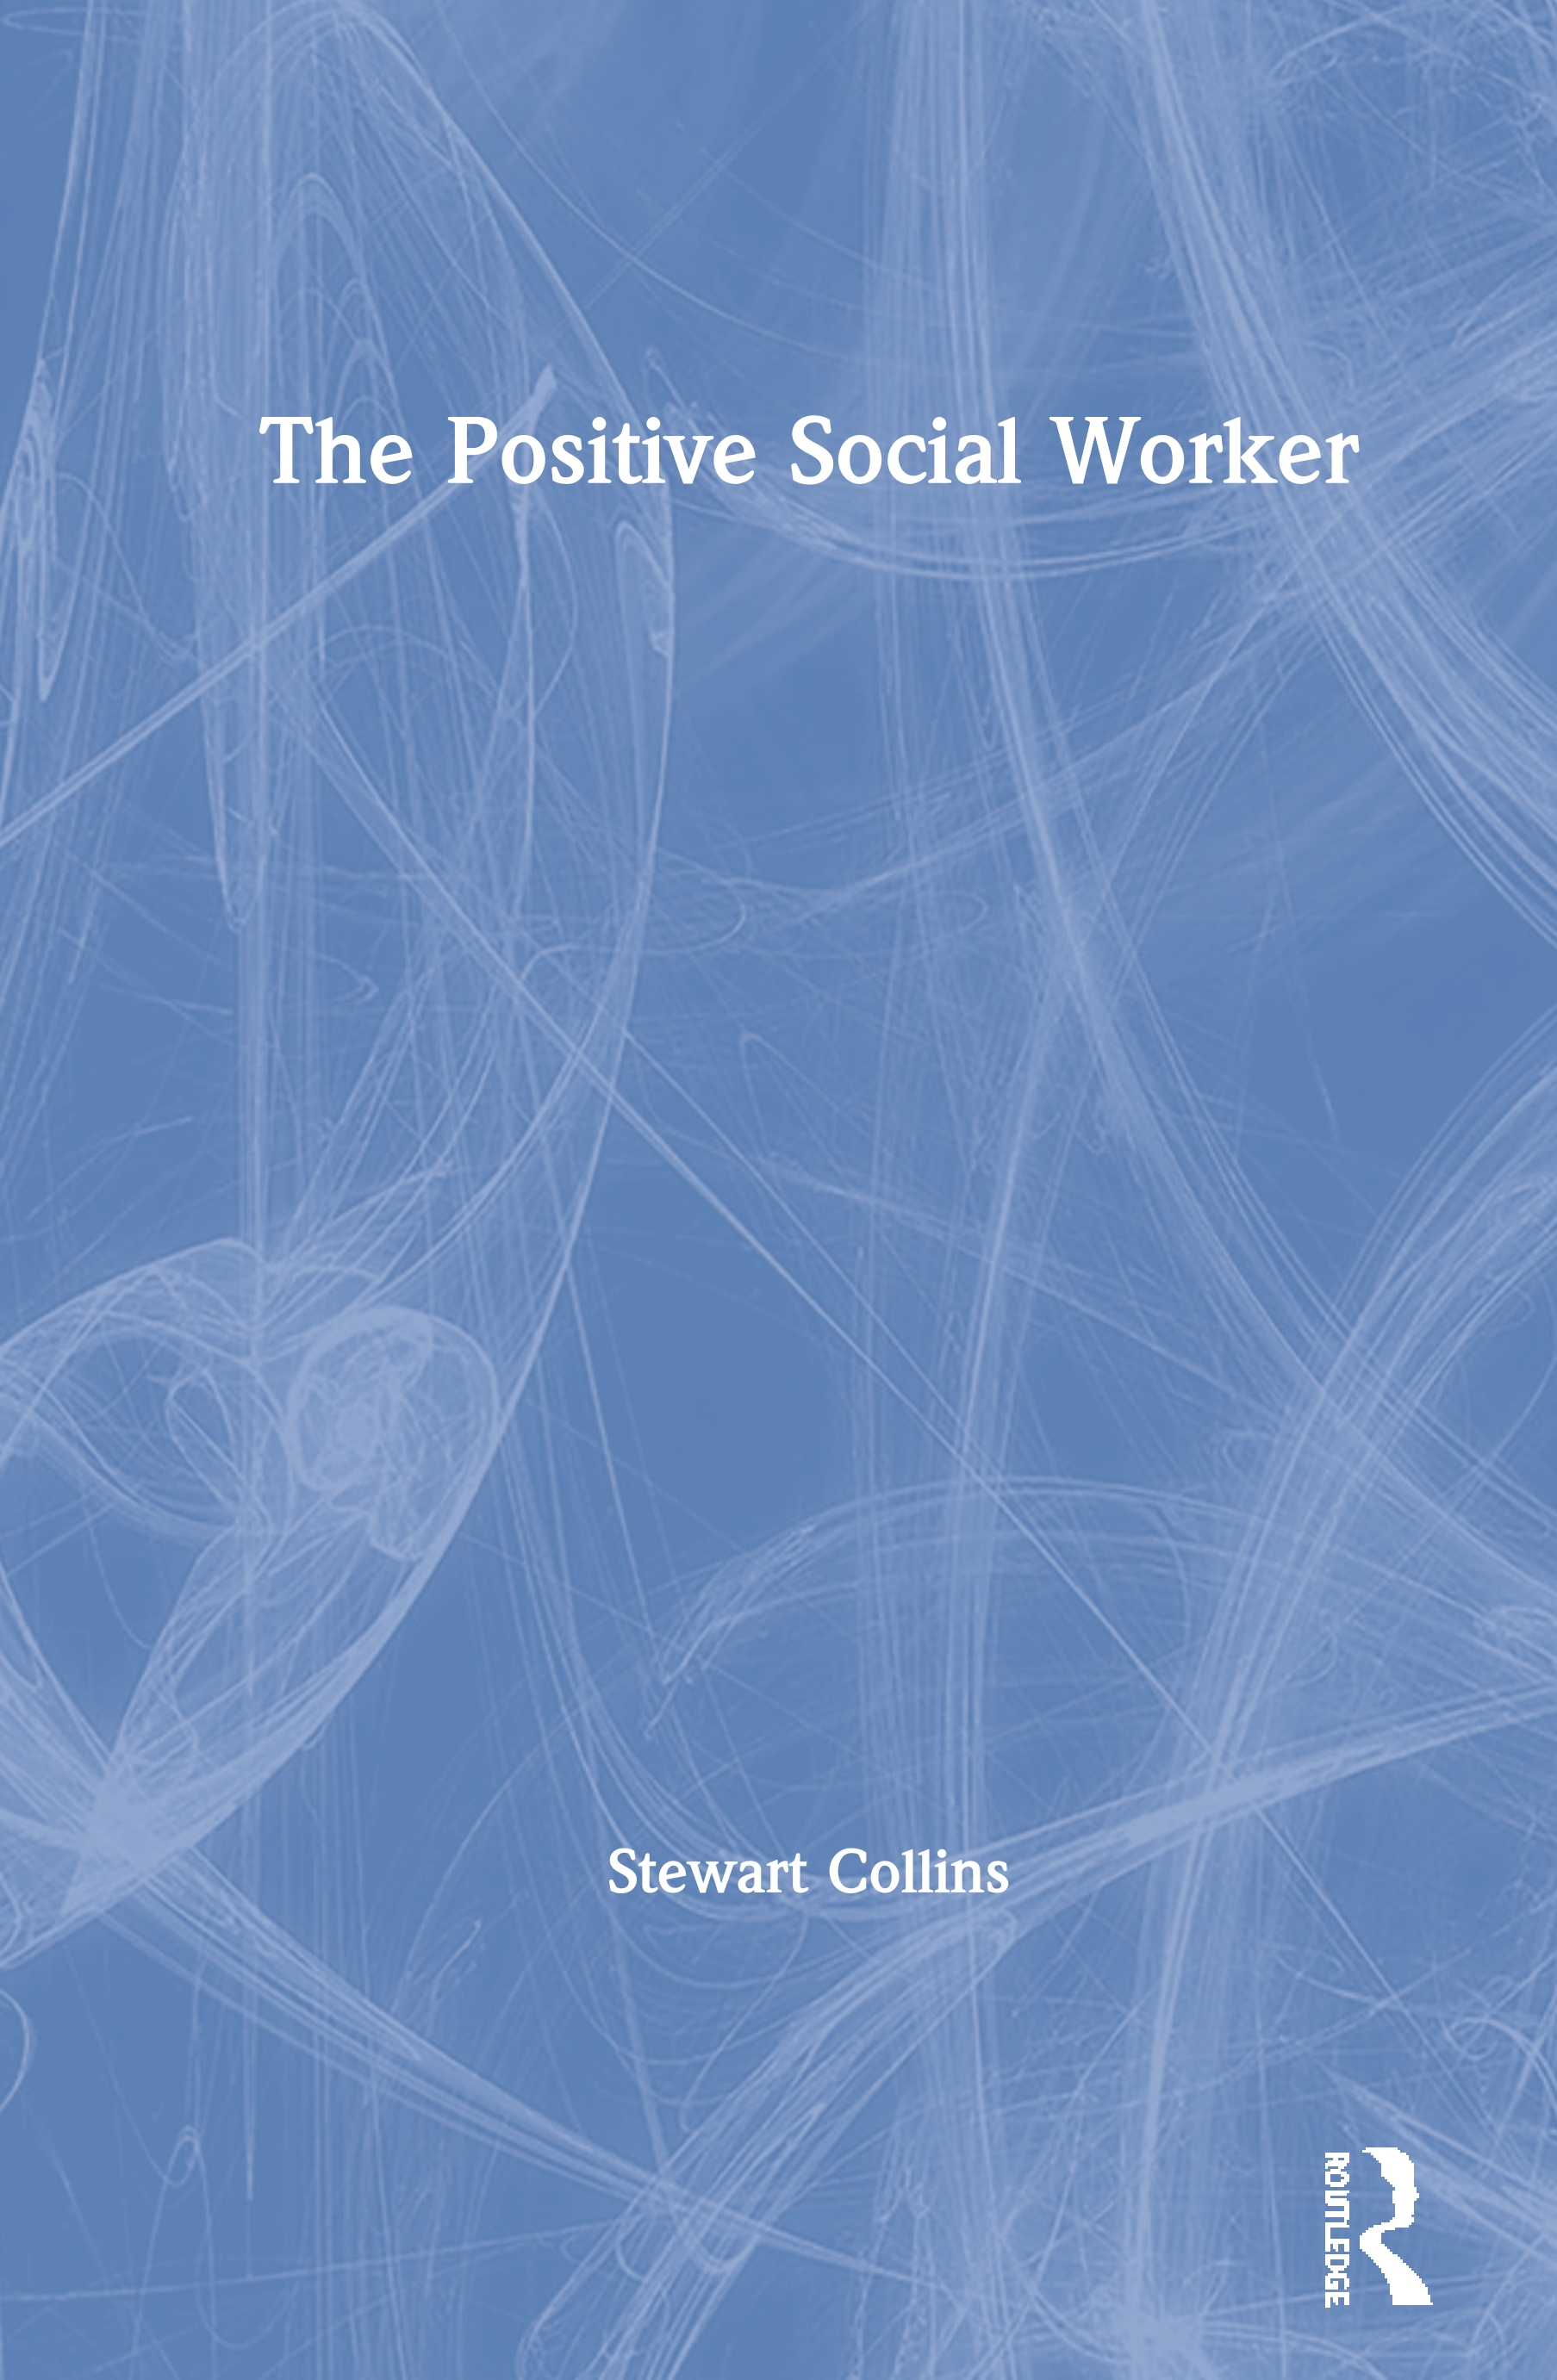 The Positive Social Worker book cover